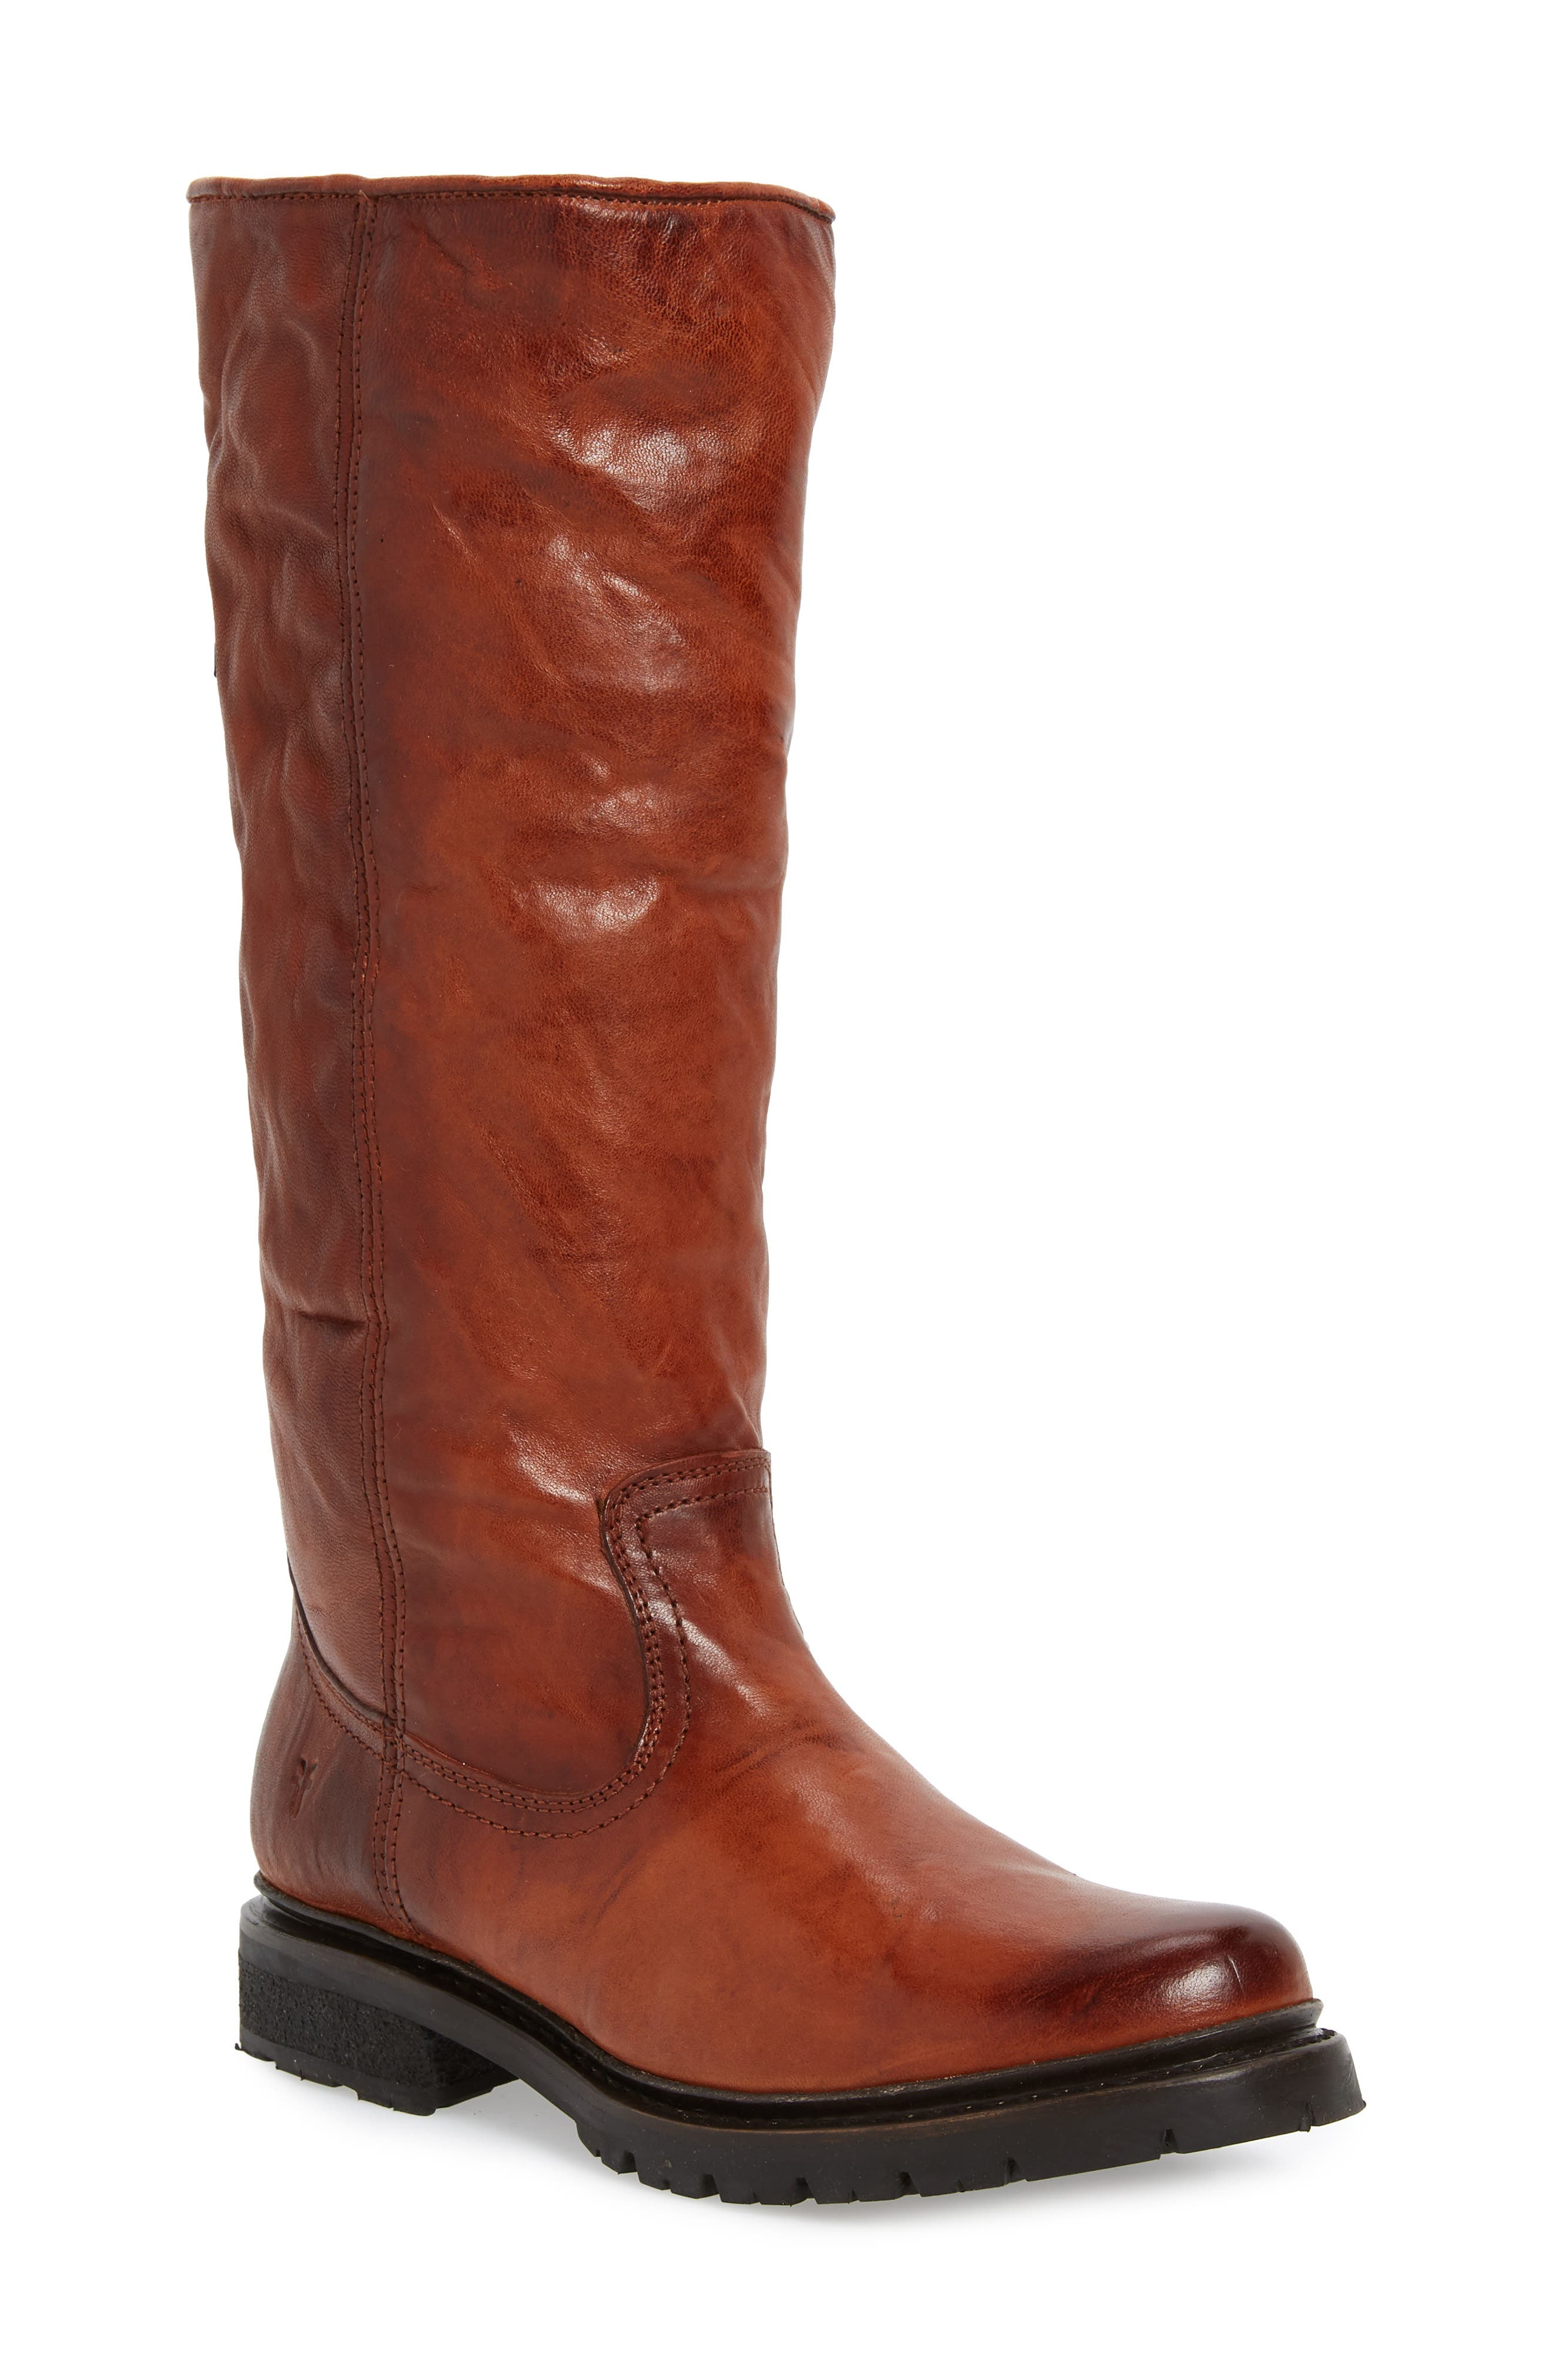 Vanessa Genuine Shearling Lined Knee High Boot in Cognac Leather